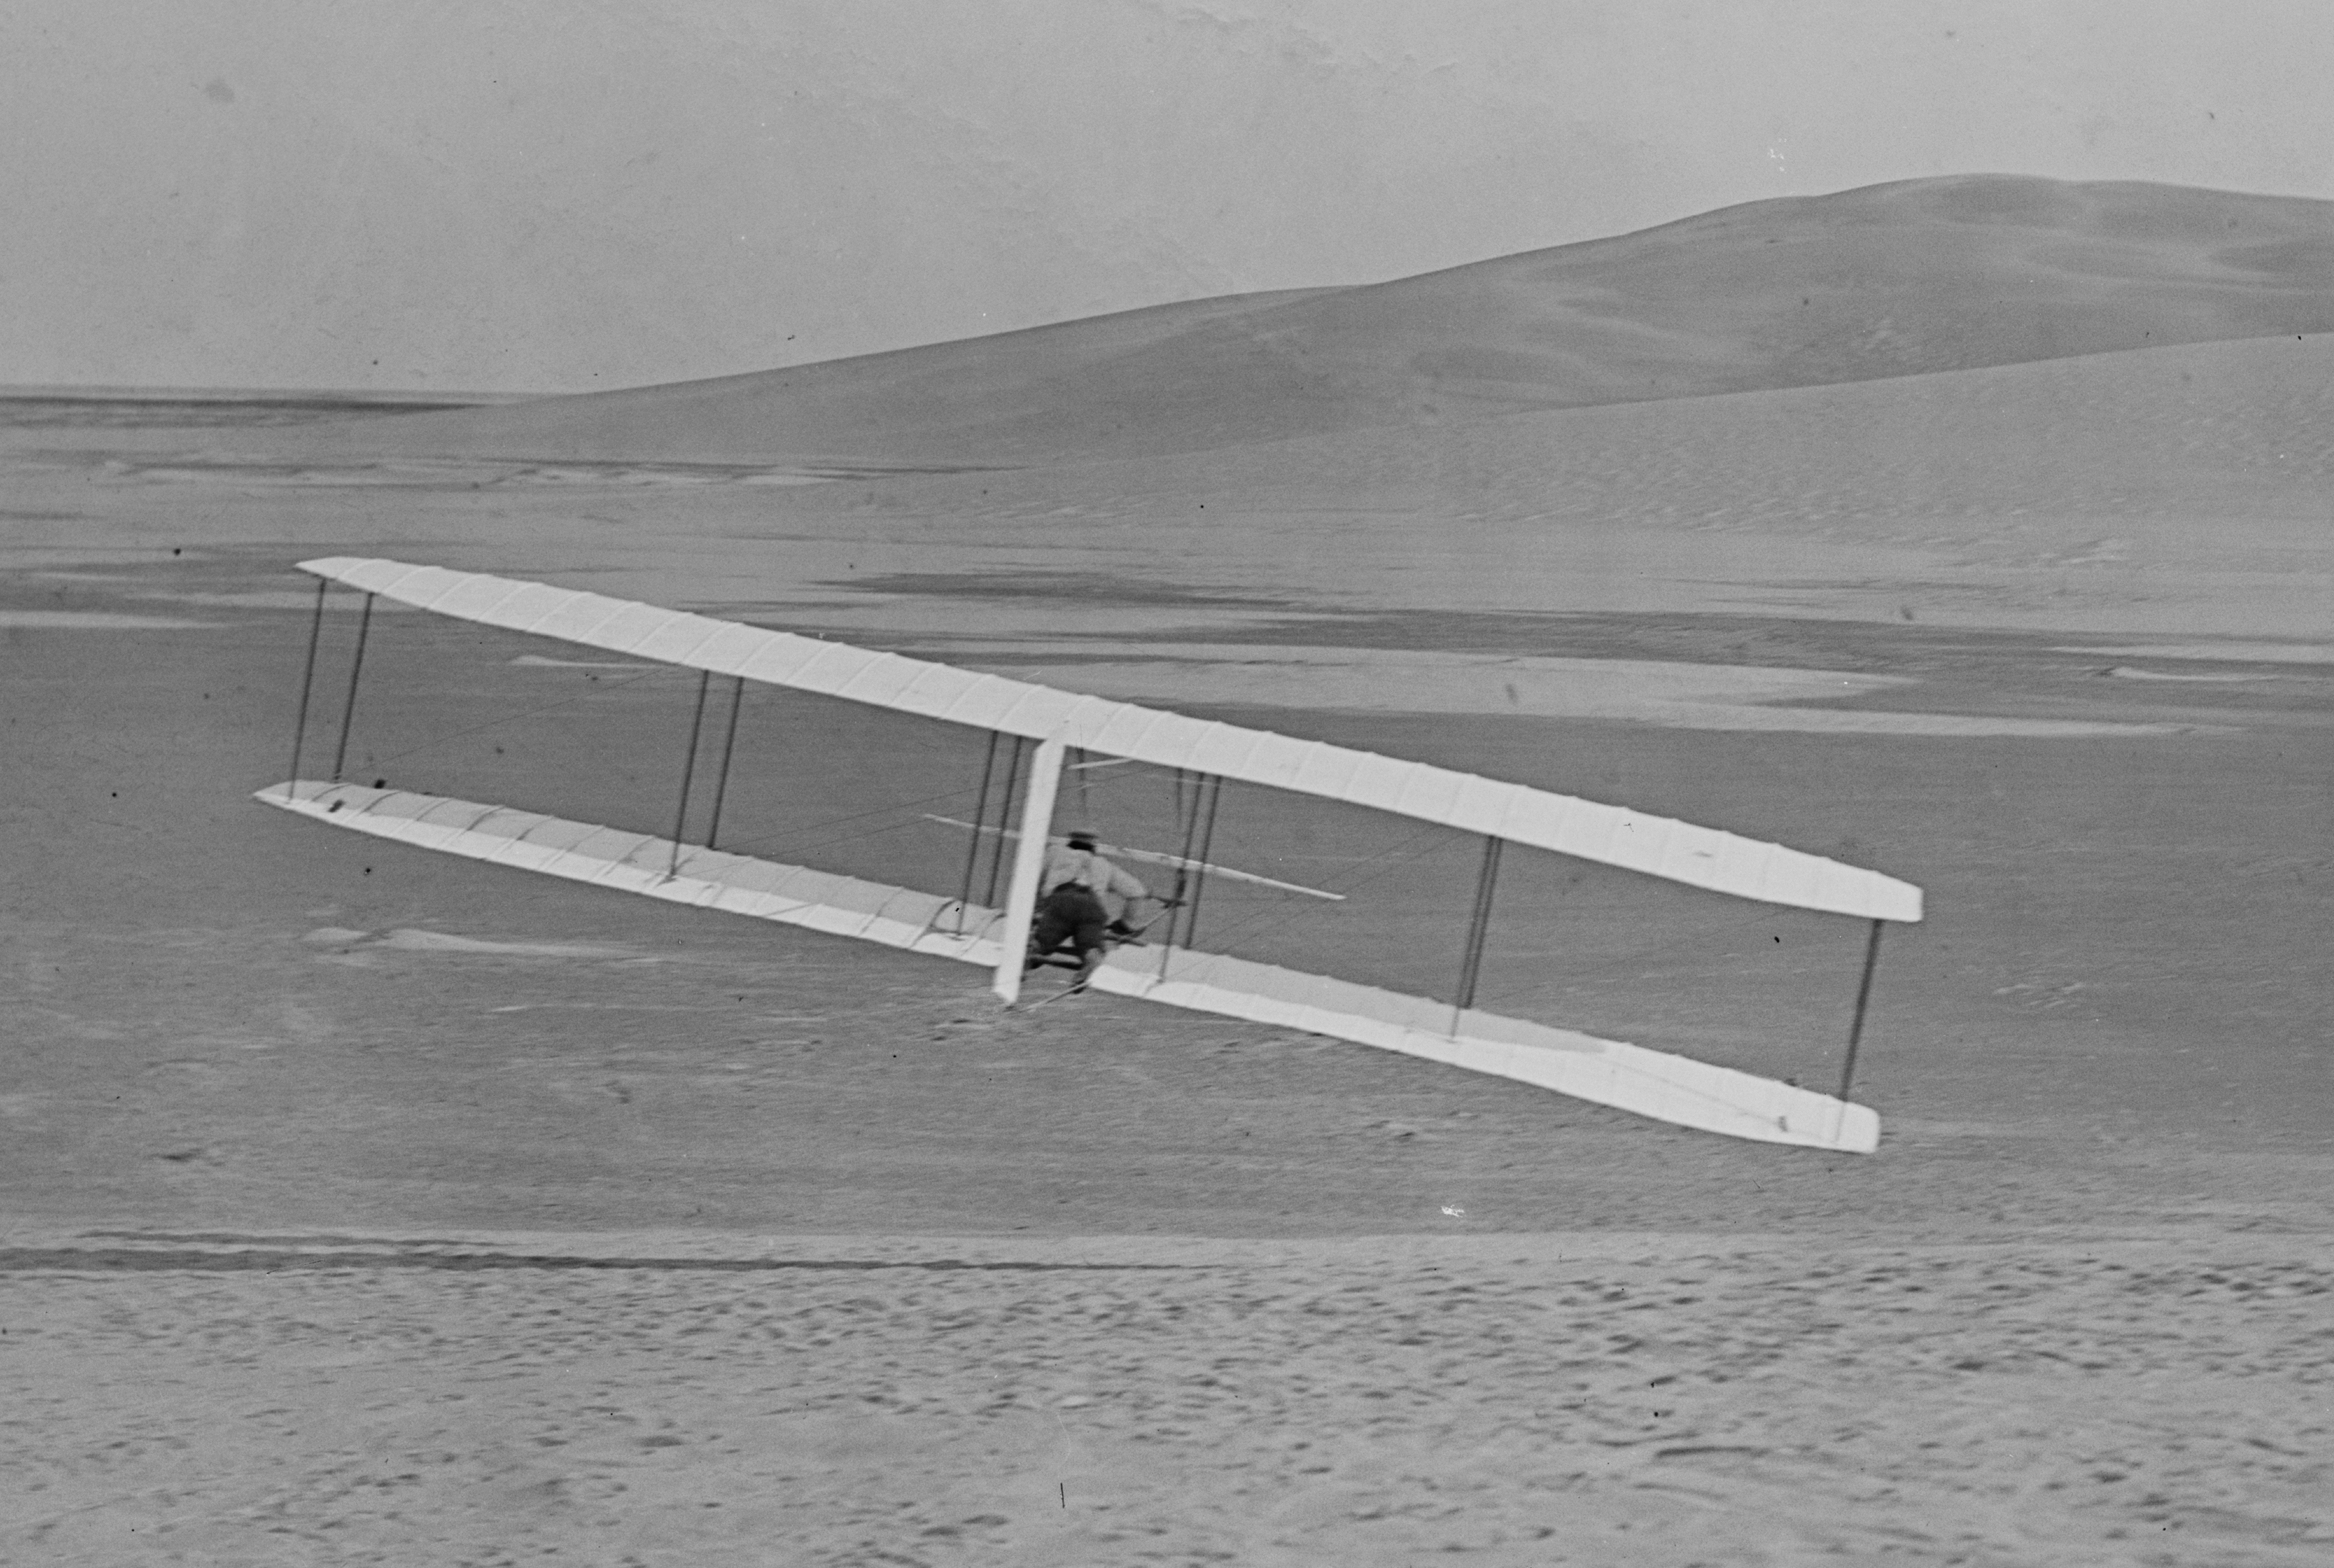 Nostalgic Anniversaries: The Wright Brothers